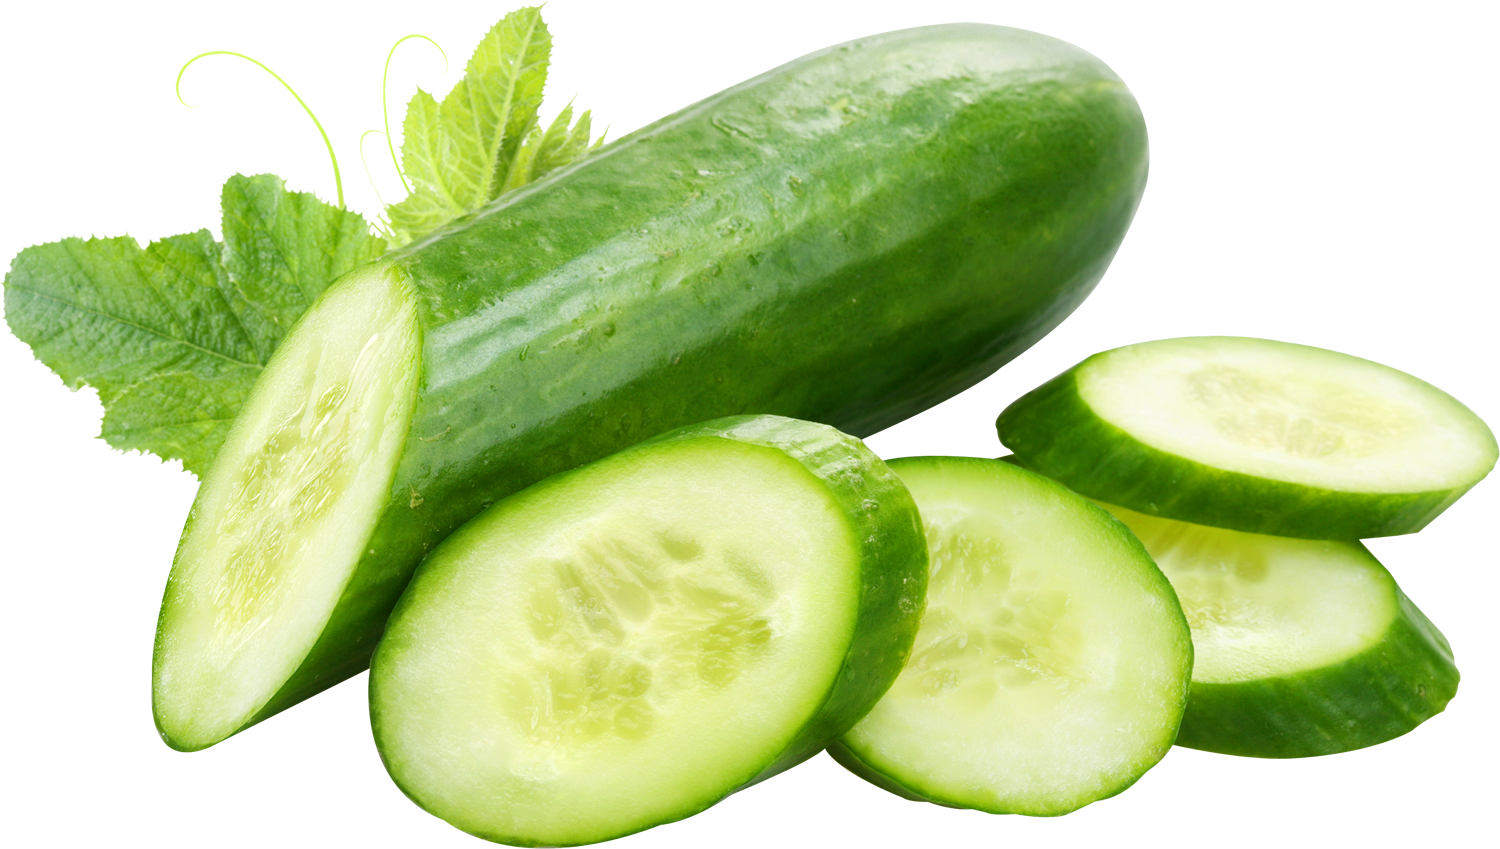 Home u003e Cucumber PNG Image. More View - Cucumber HD PNG